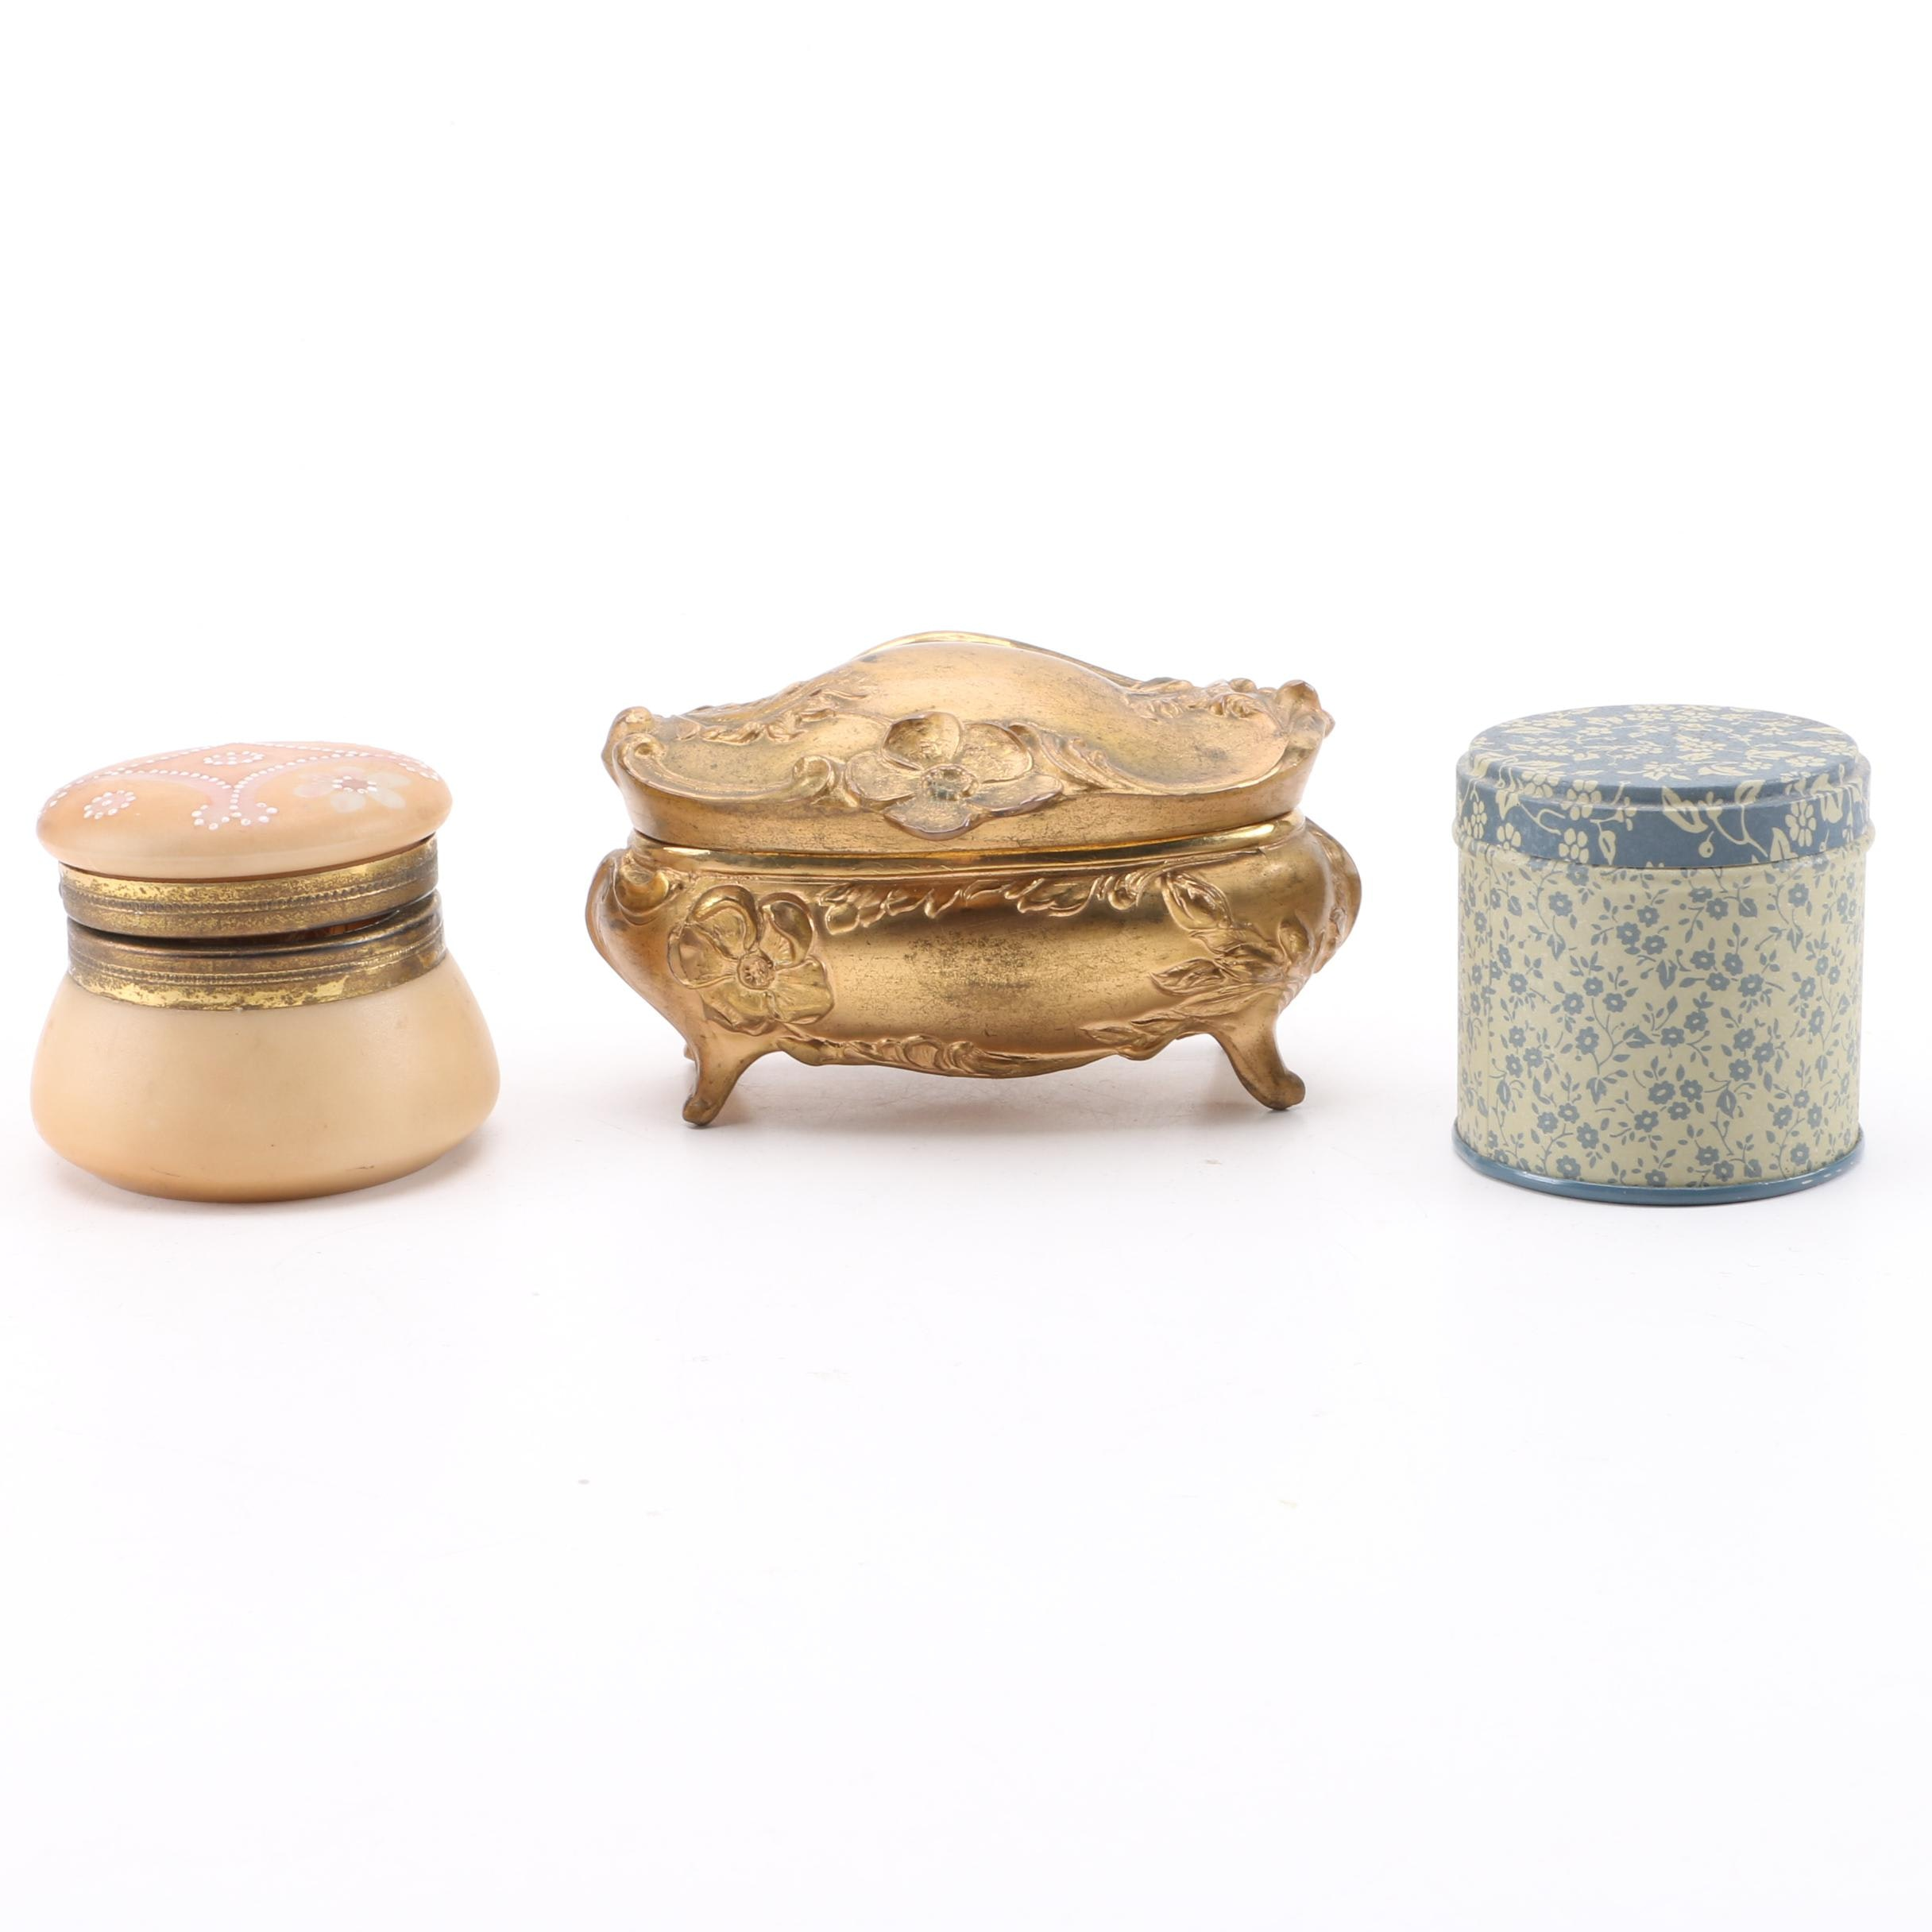 Three Small Decorative Containers